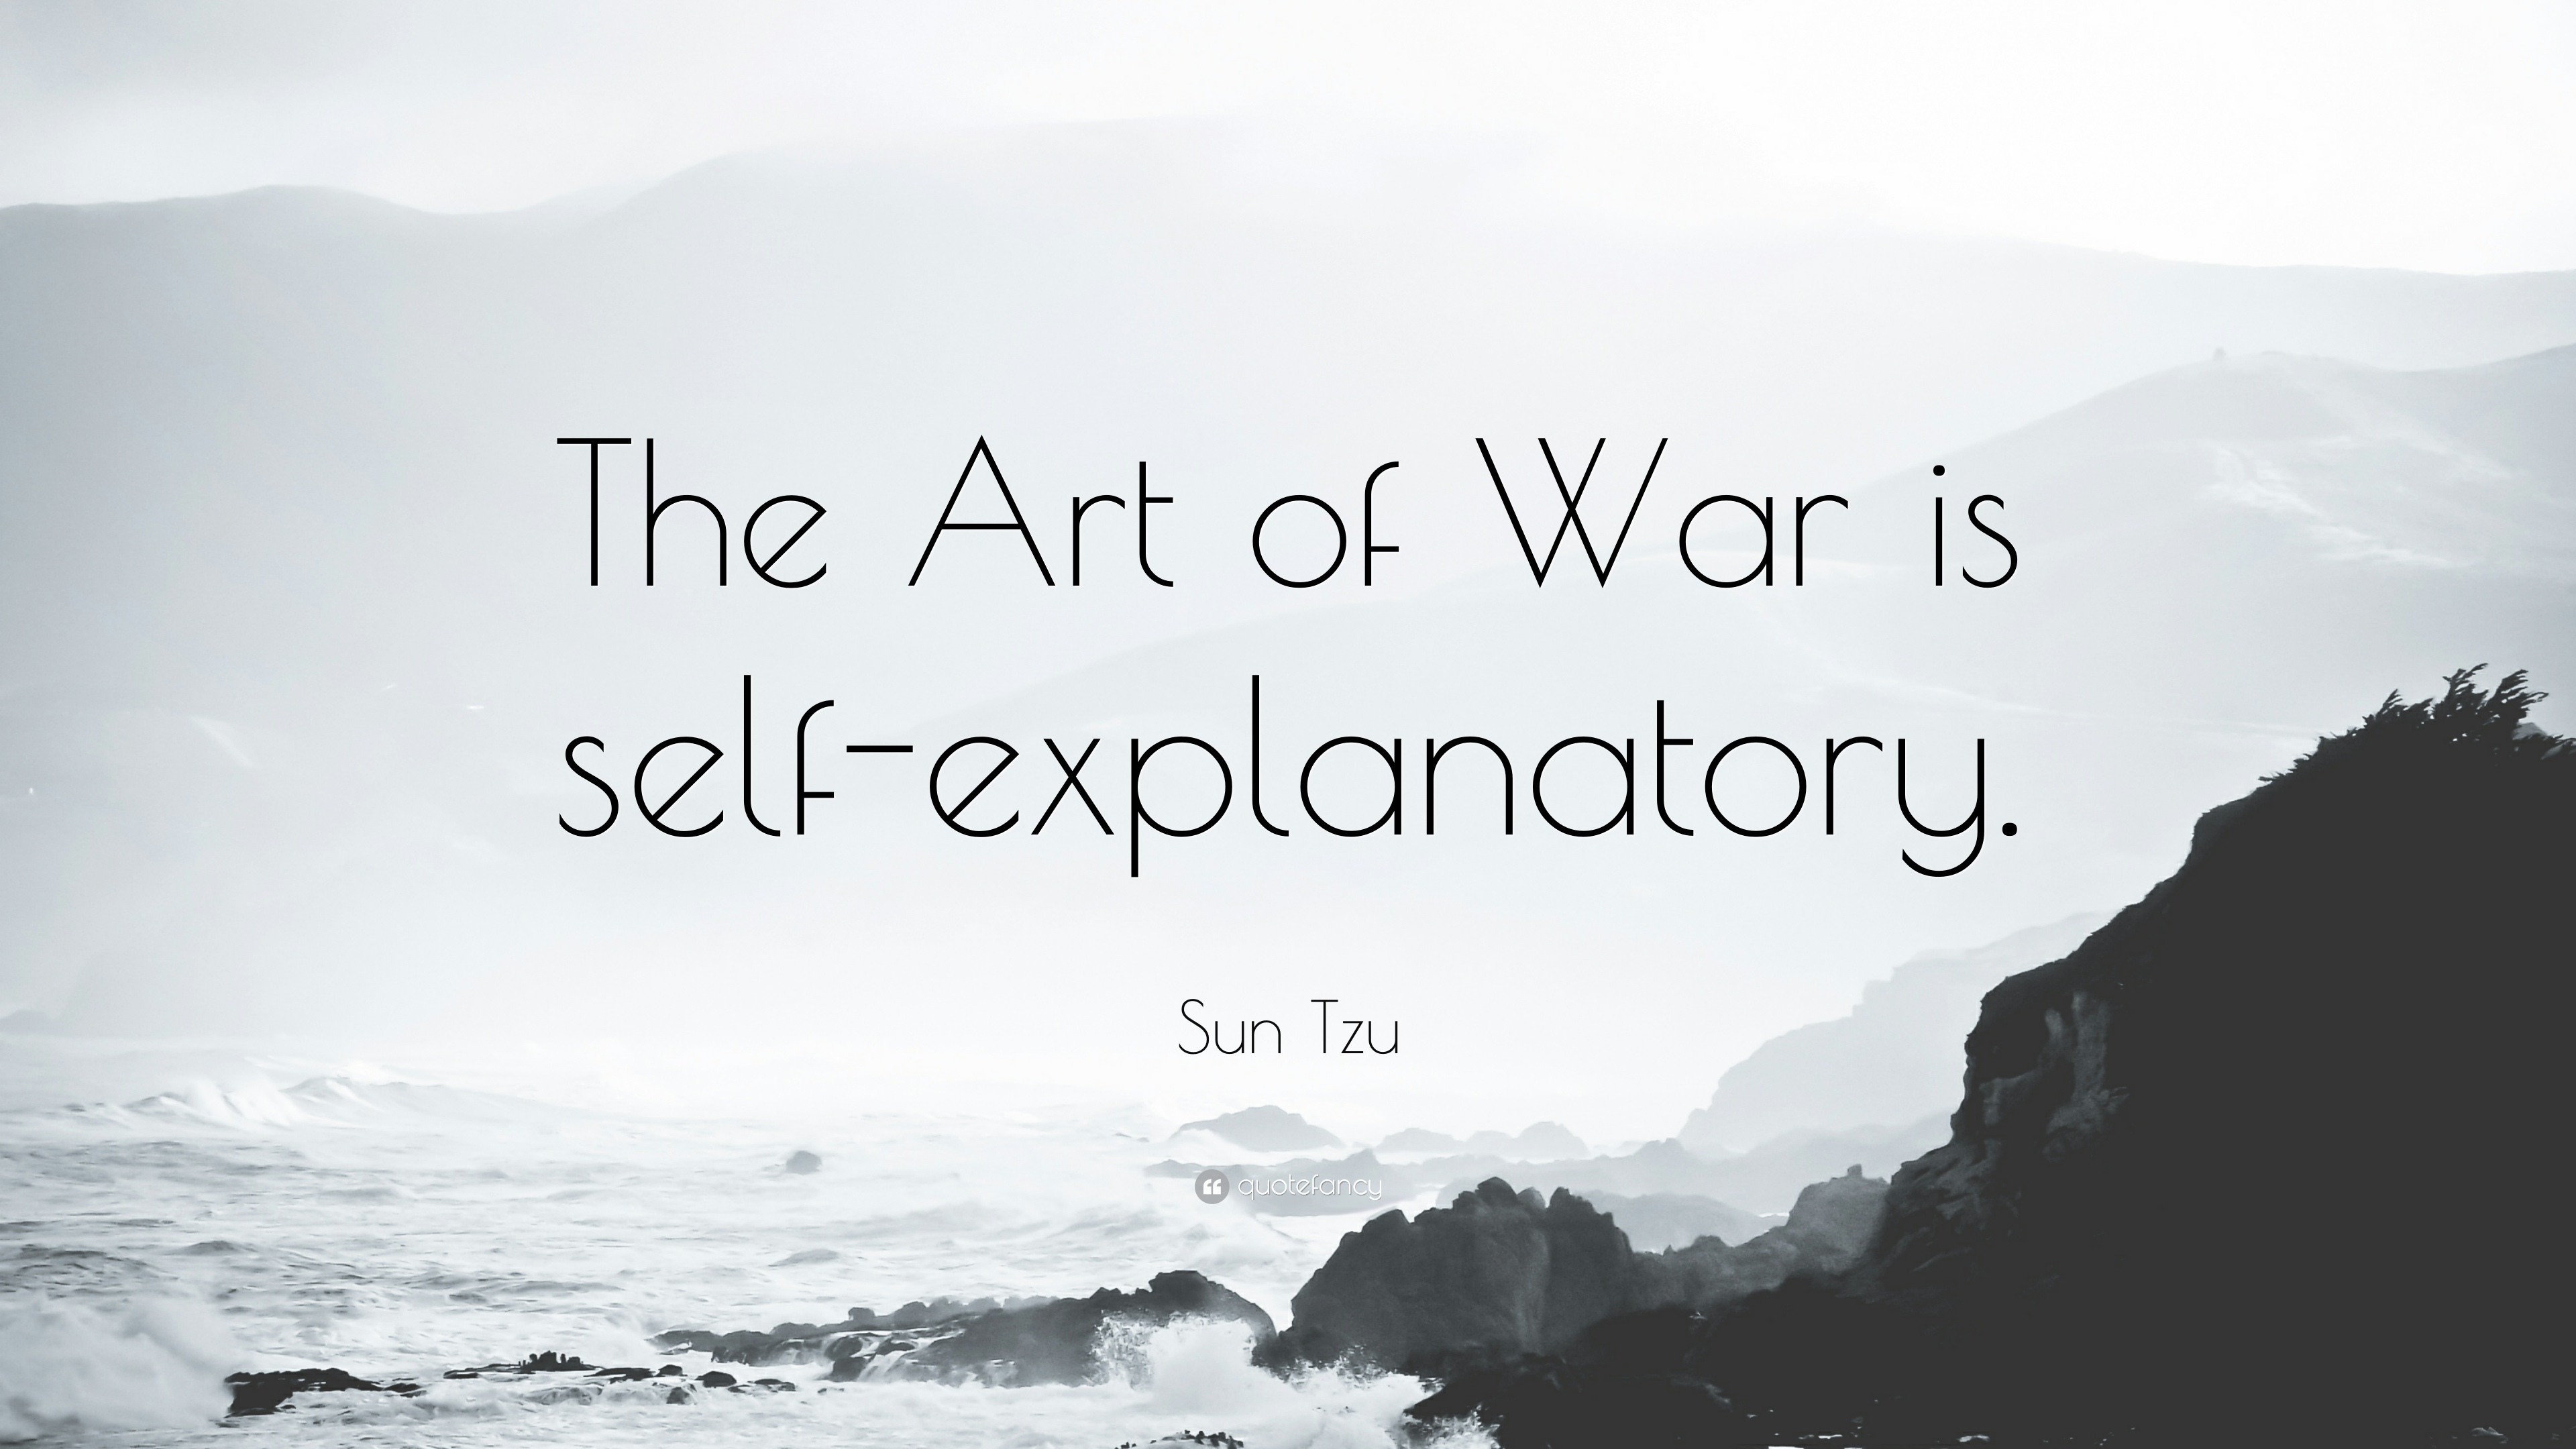 art essay sun tzu war The art of war by sun tzu the art of war is the most successful book on military strategy that was written during the 6th century bc by sun tzu - the art of war by sun tzu introduction.